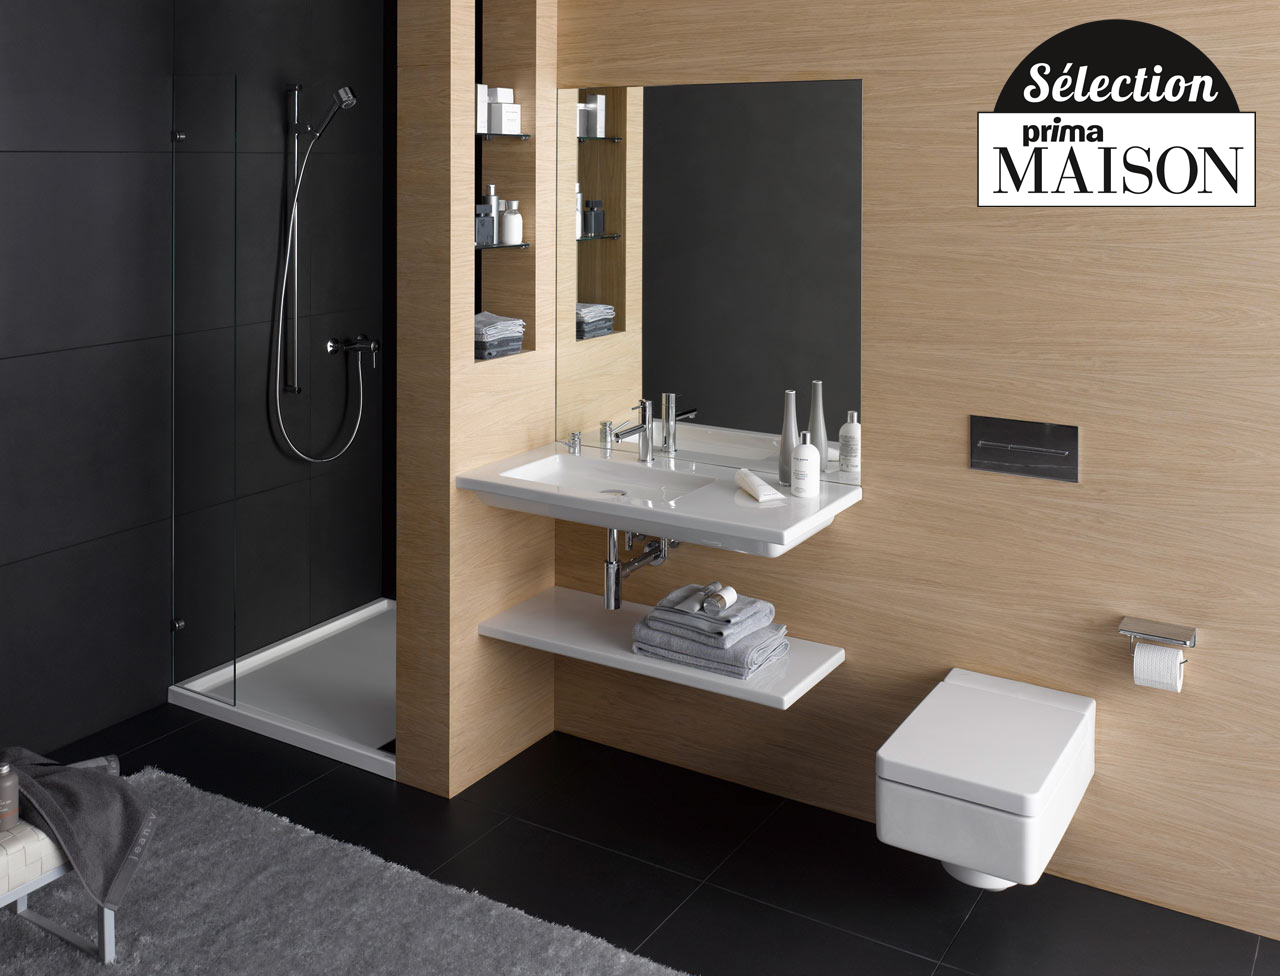 D coration salle de bain 2016 exemples d 39 am nagements for Salle de bain d architecte